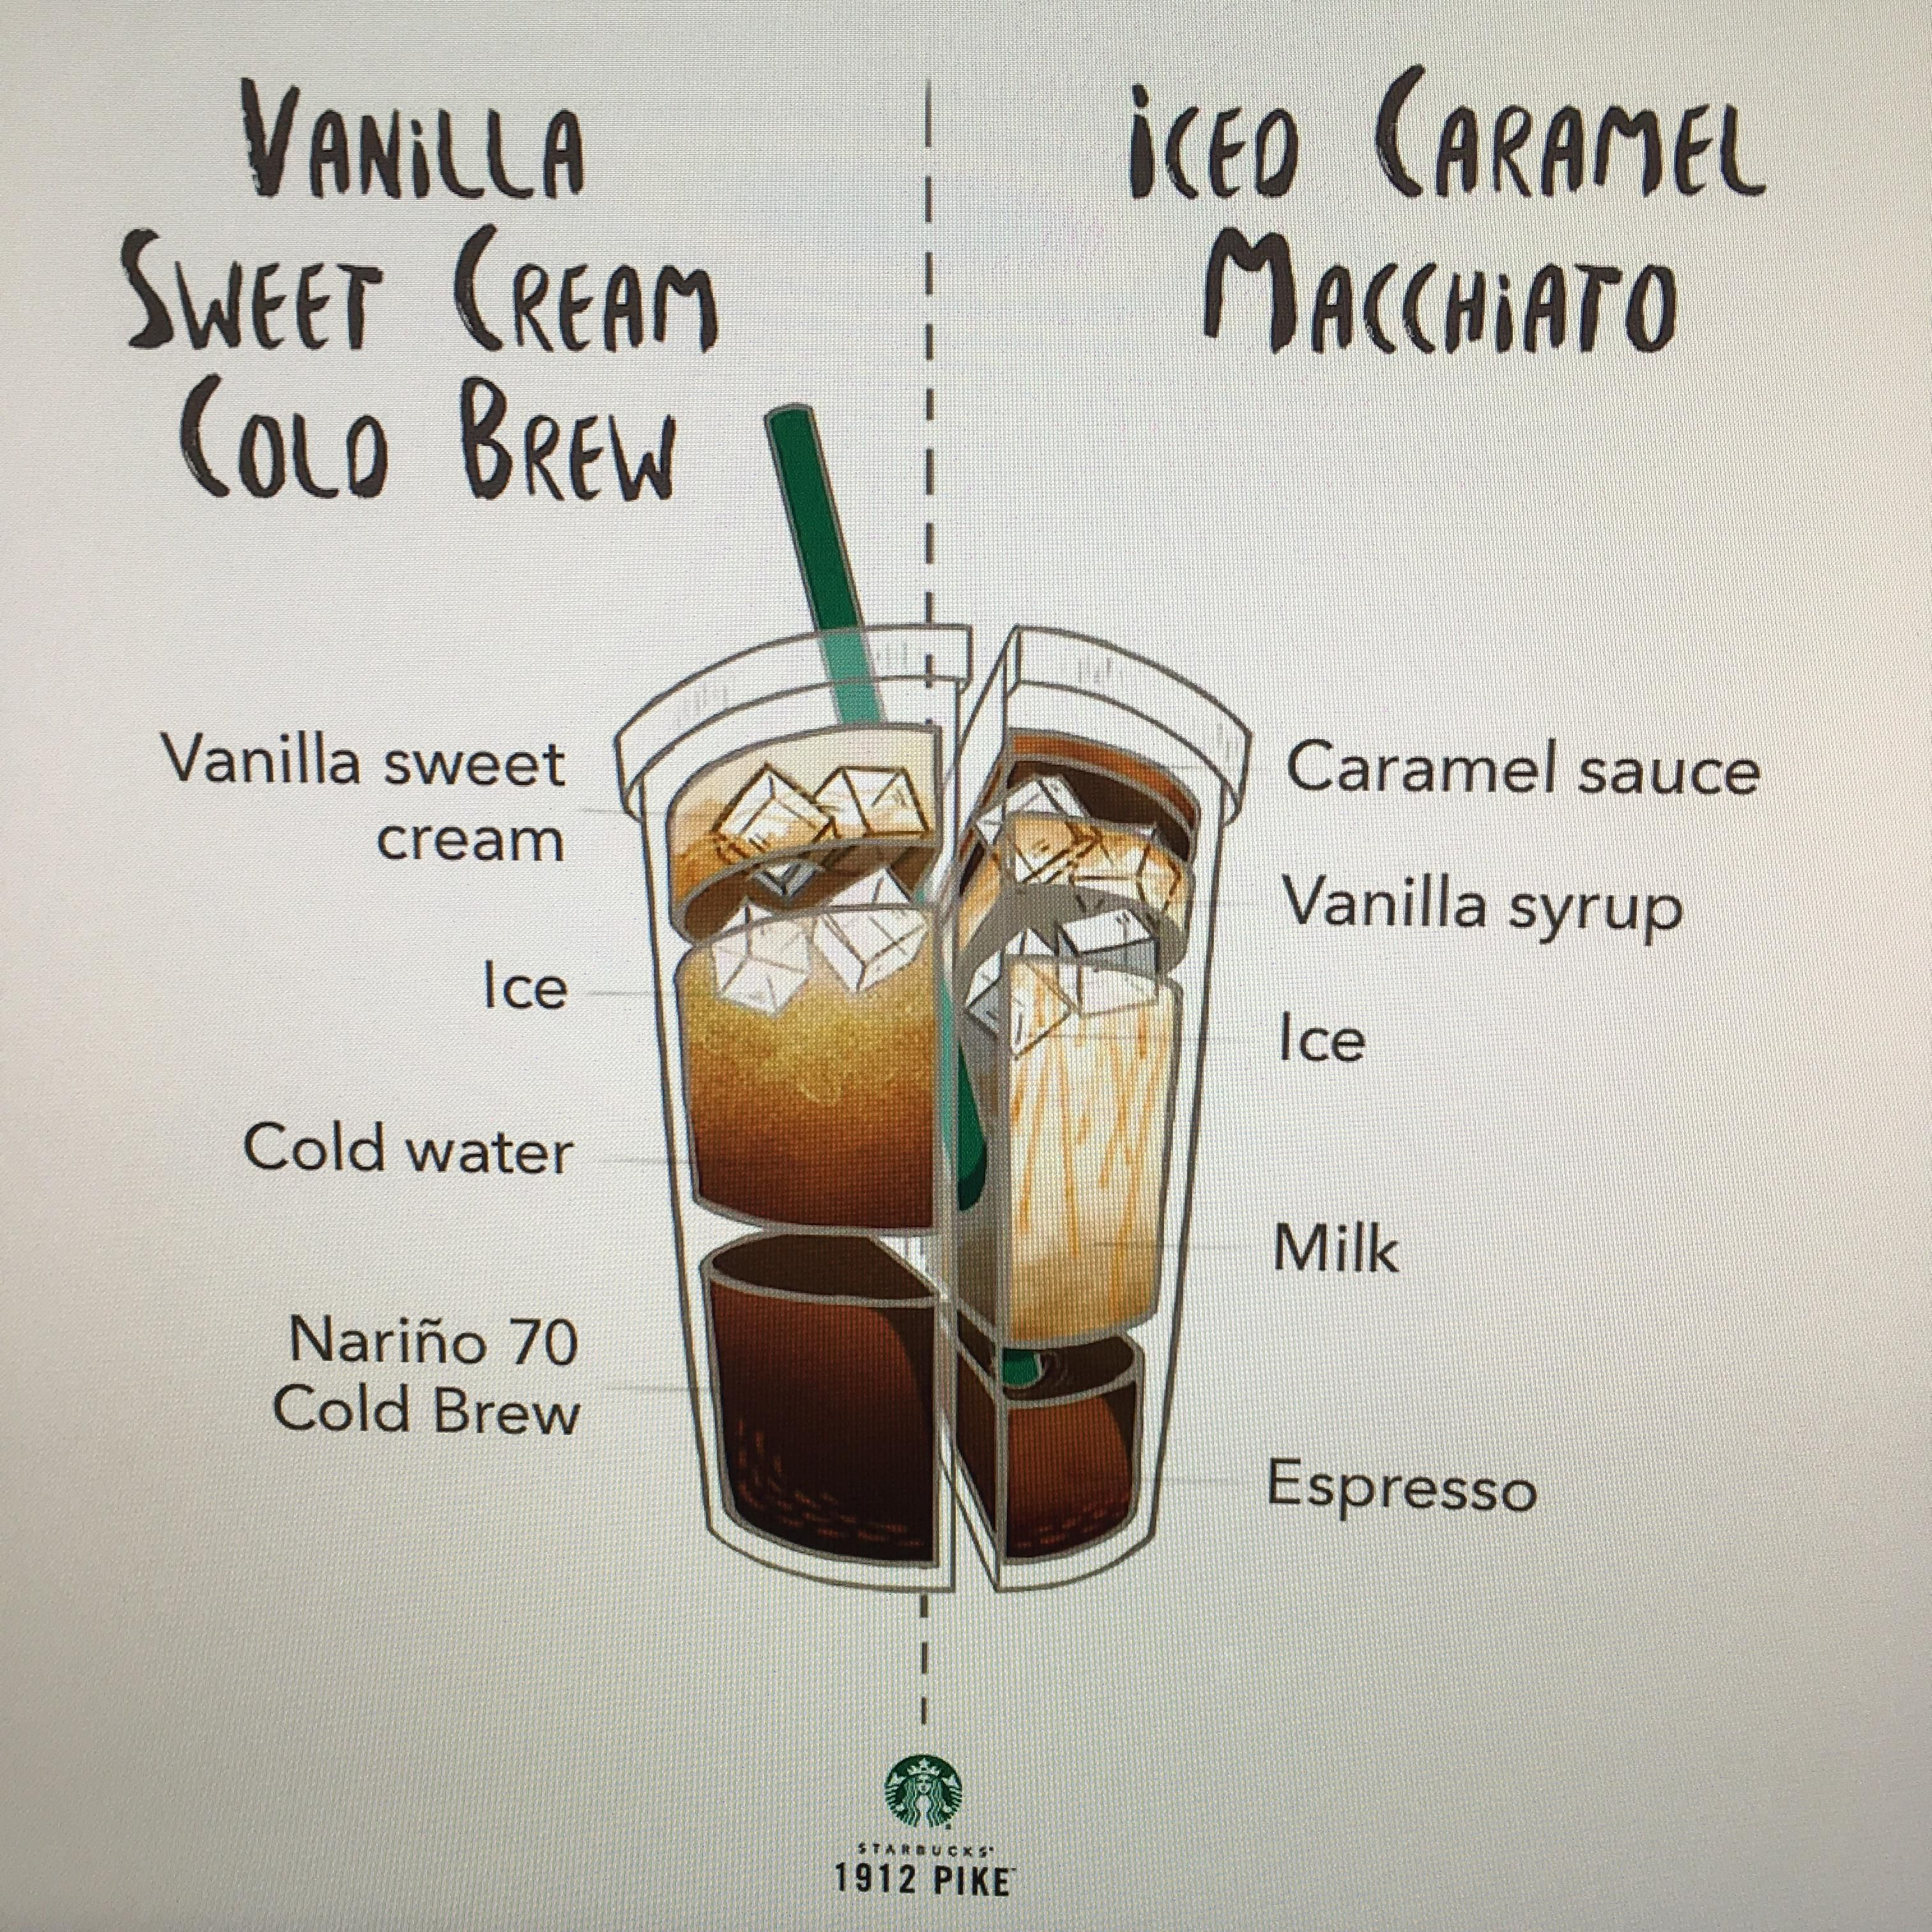 Green Bean Question Is This Diagram Wrong Shouldn T The Espresso In The Macchiato Be On Top And Not The Bottom Macchiato This Or That Questions Green Beans